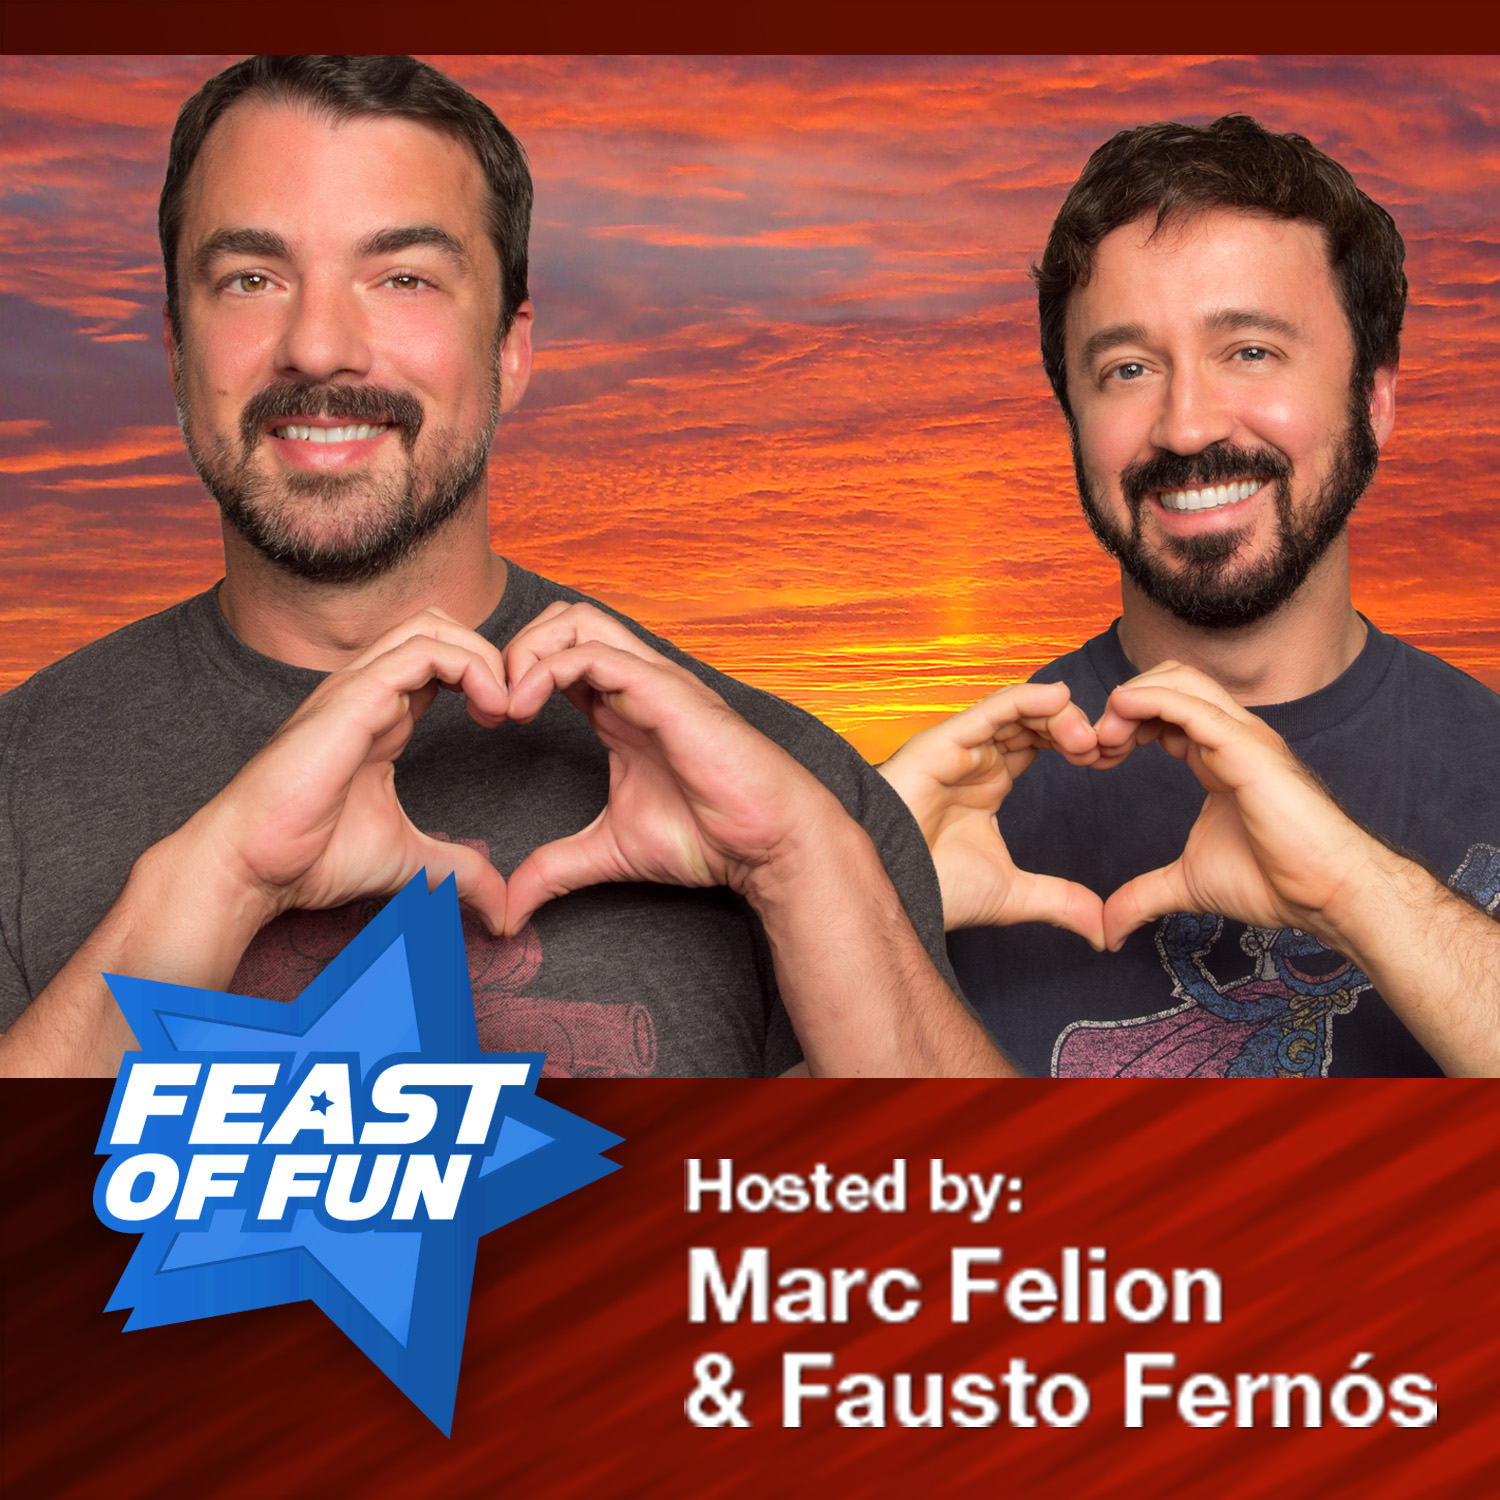 Feast of Fun: Gay Fun Show